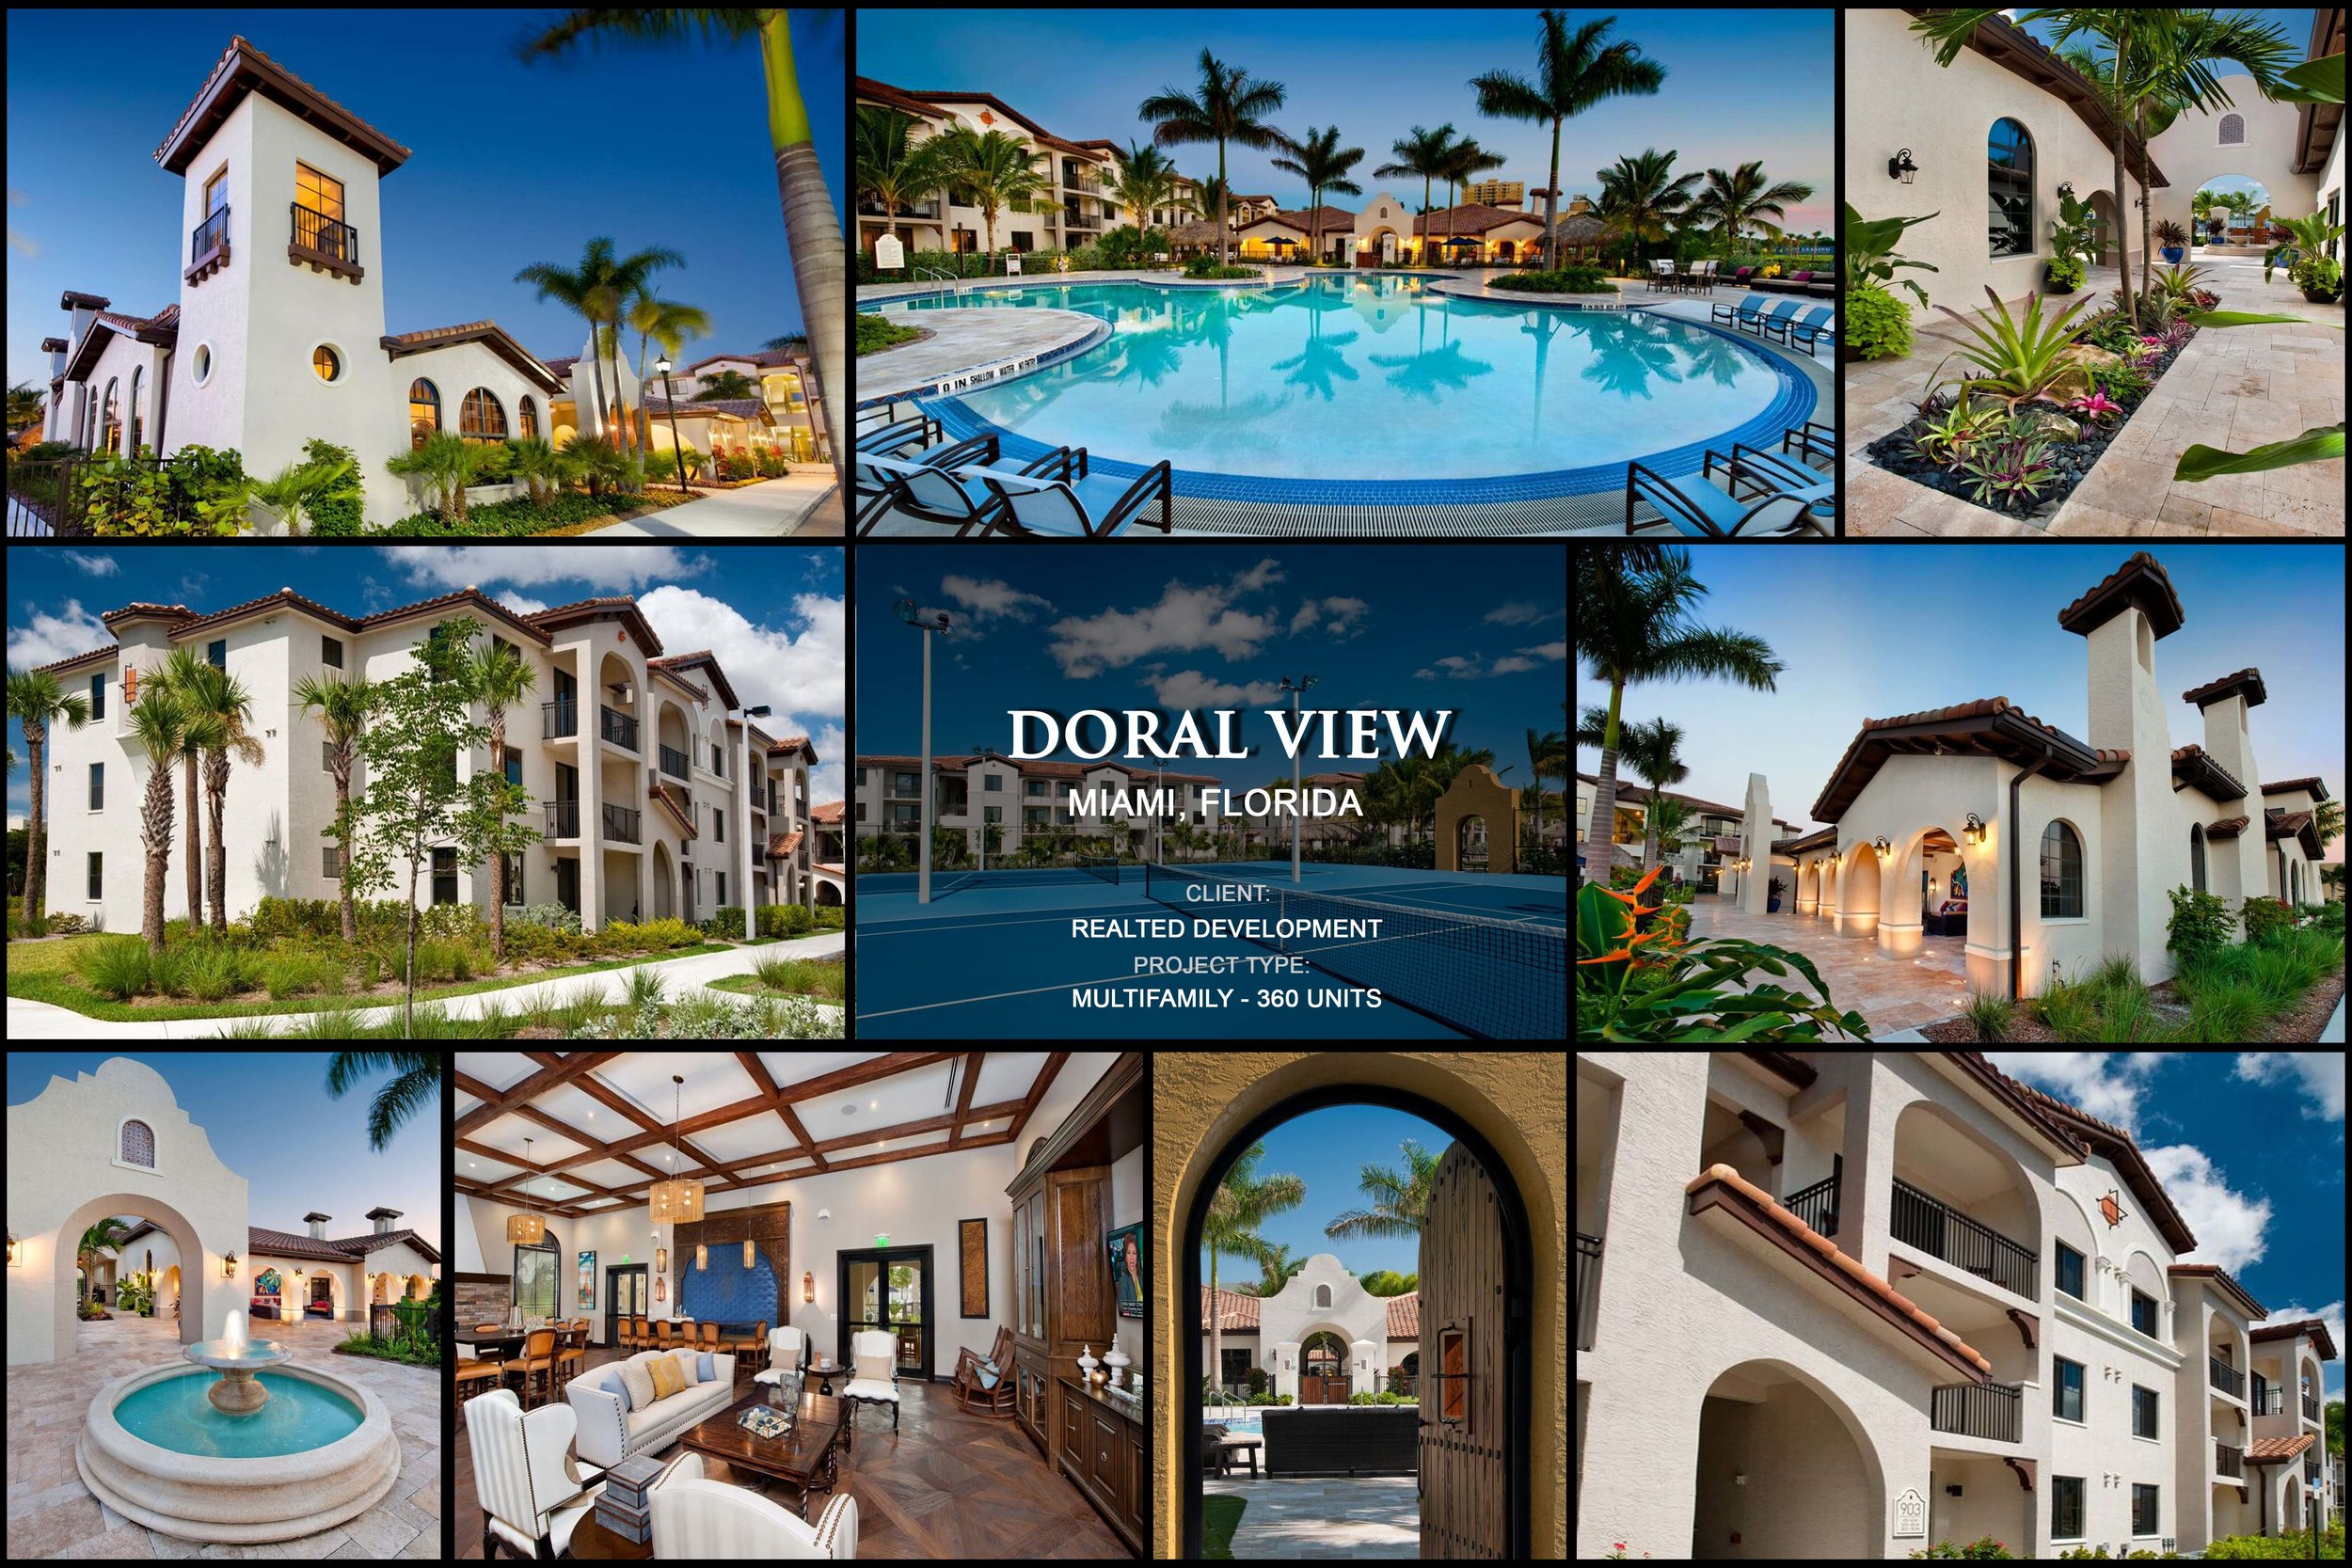 Doral View